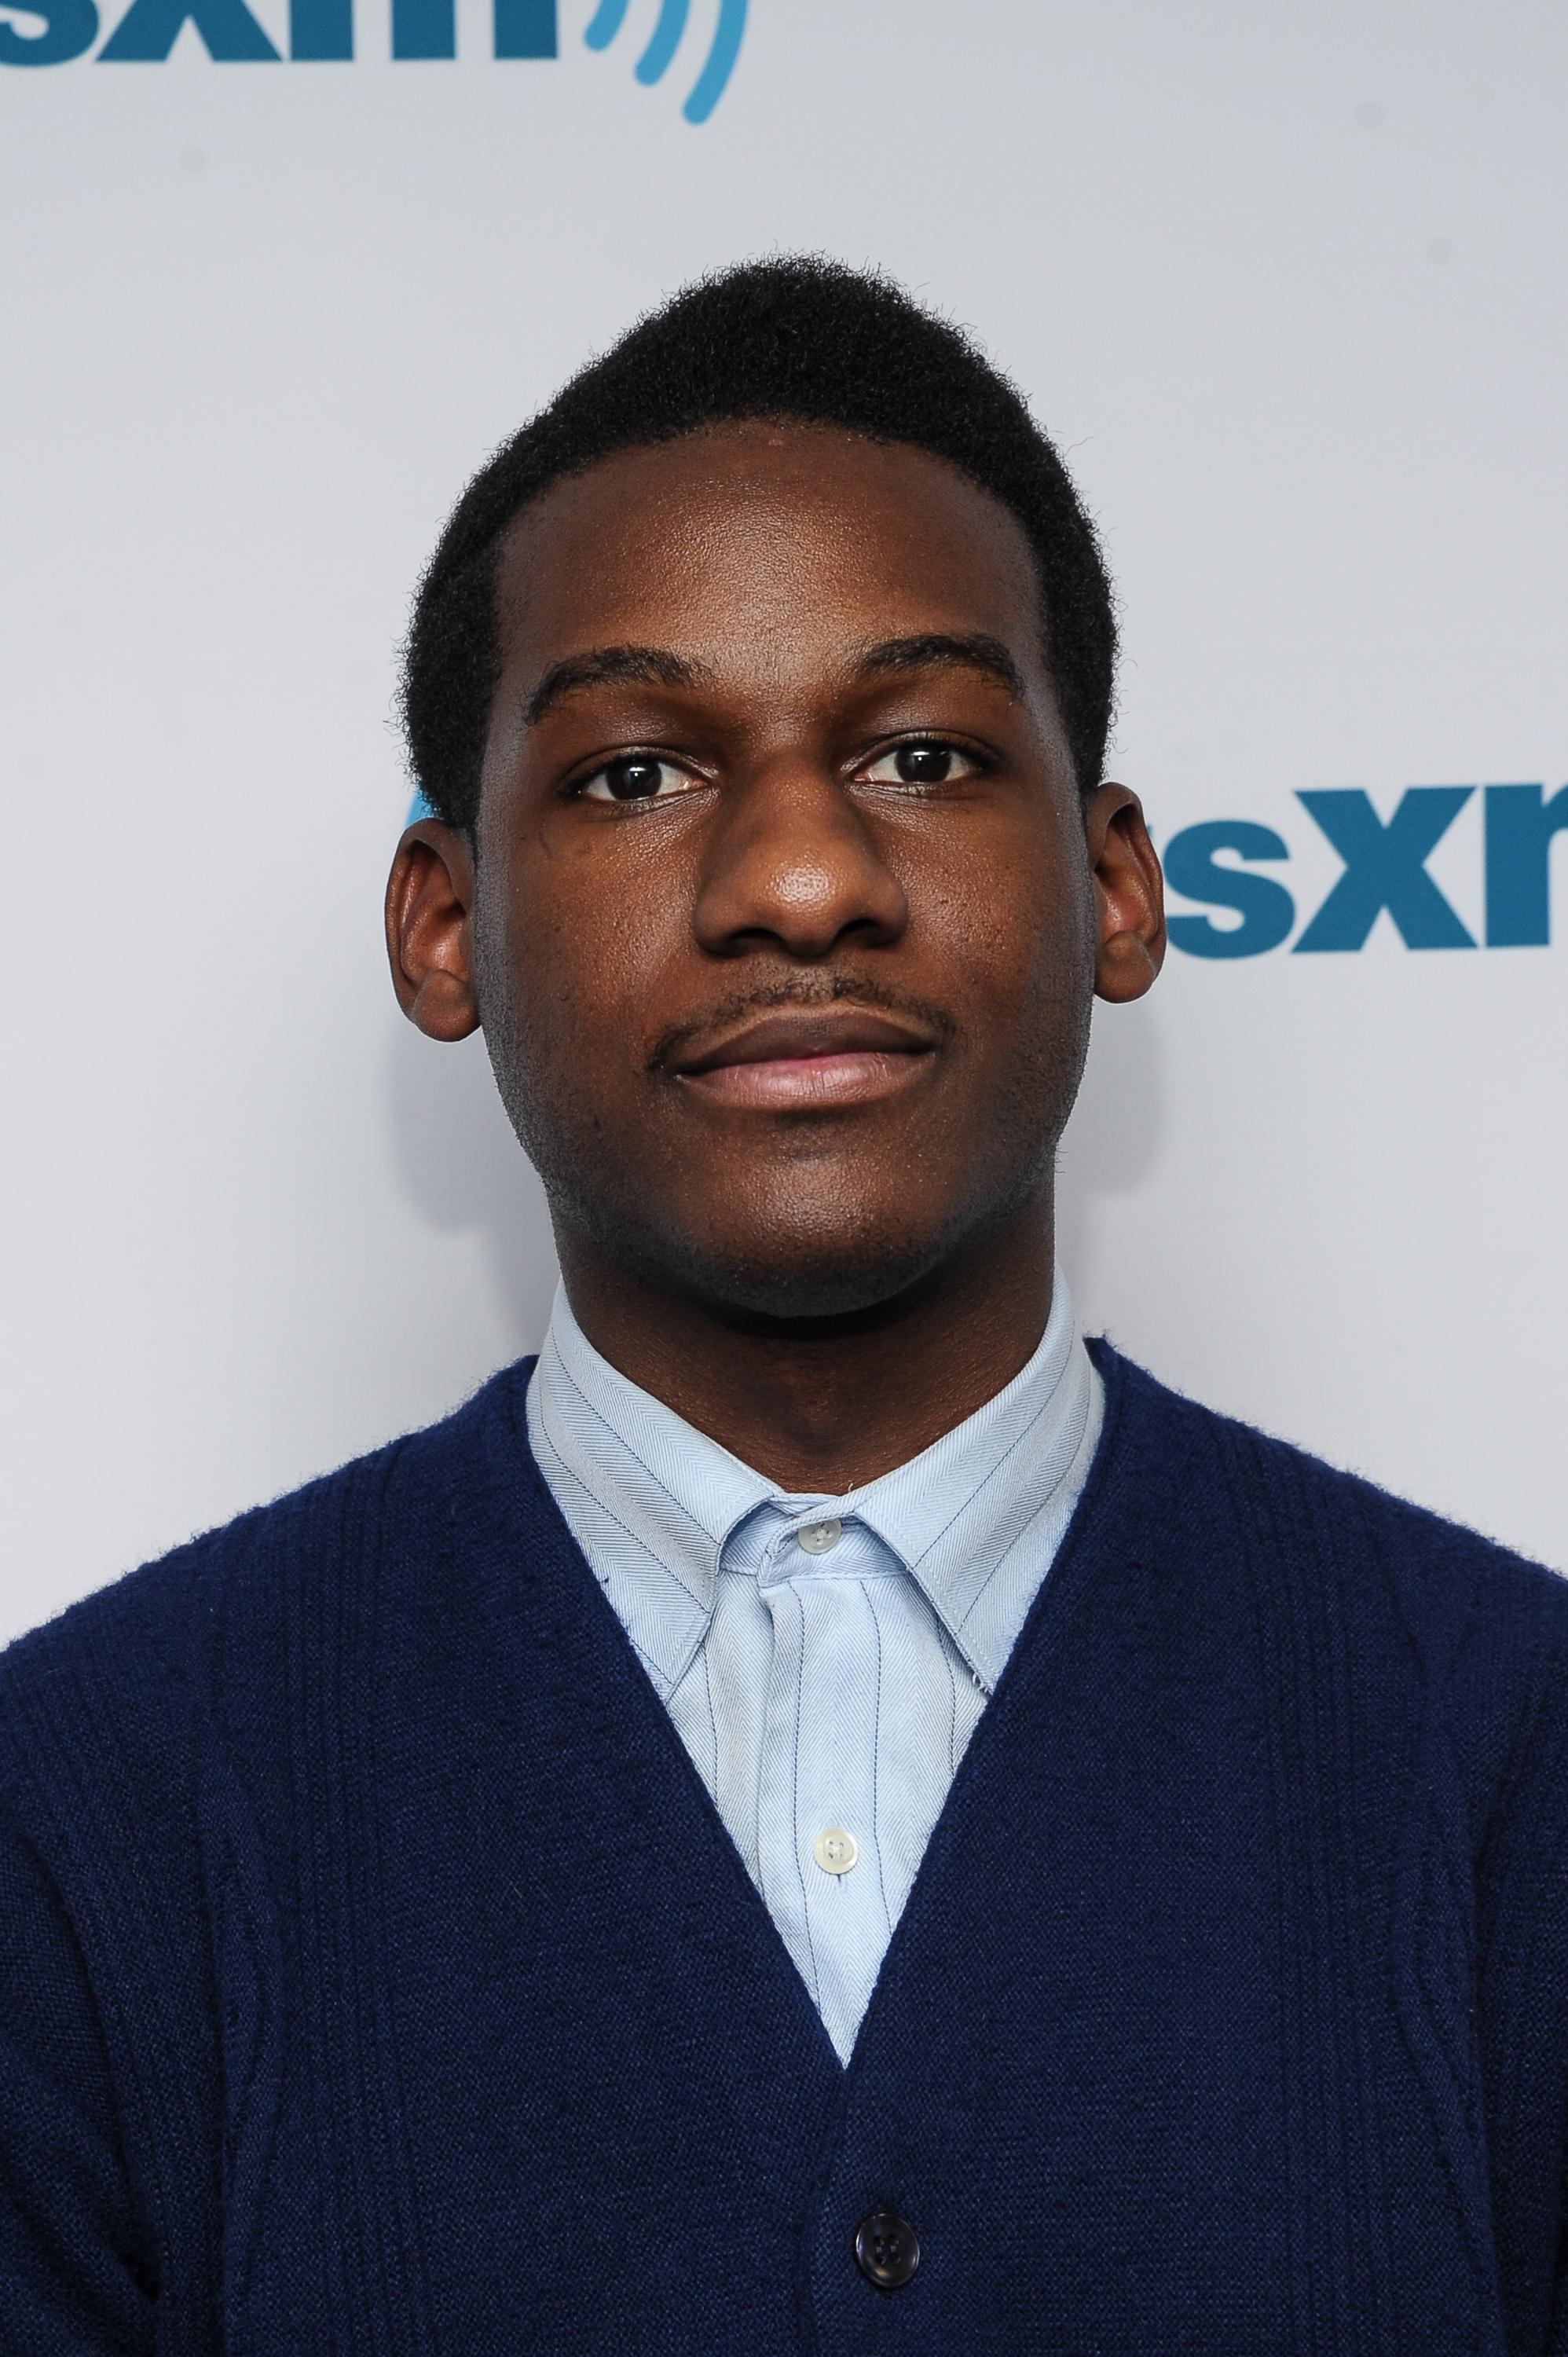 Bad As I Wanna Be Lyrics Who Is Leon Bridges What Are The Lyrics To River And When Was His